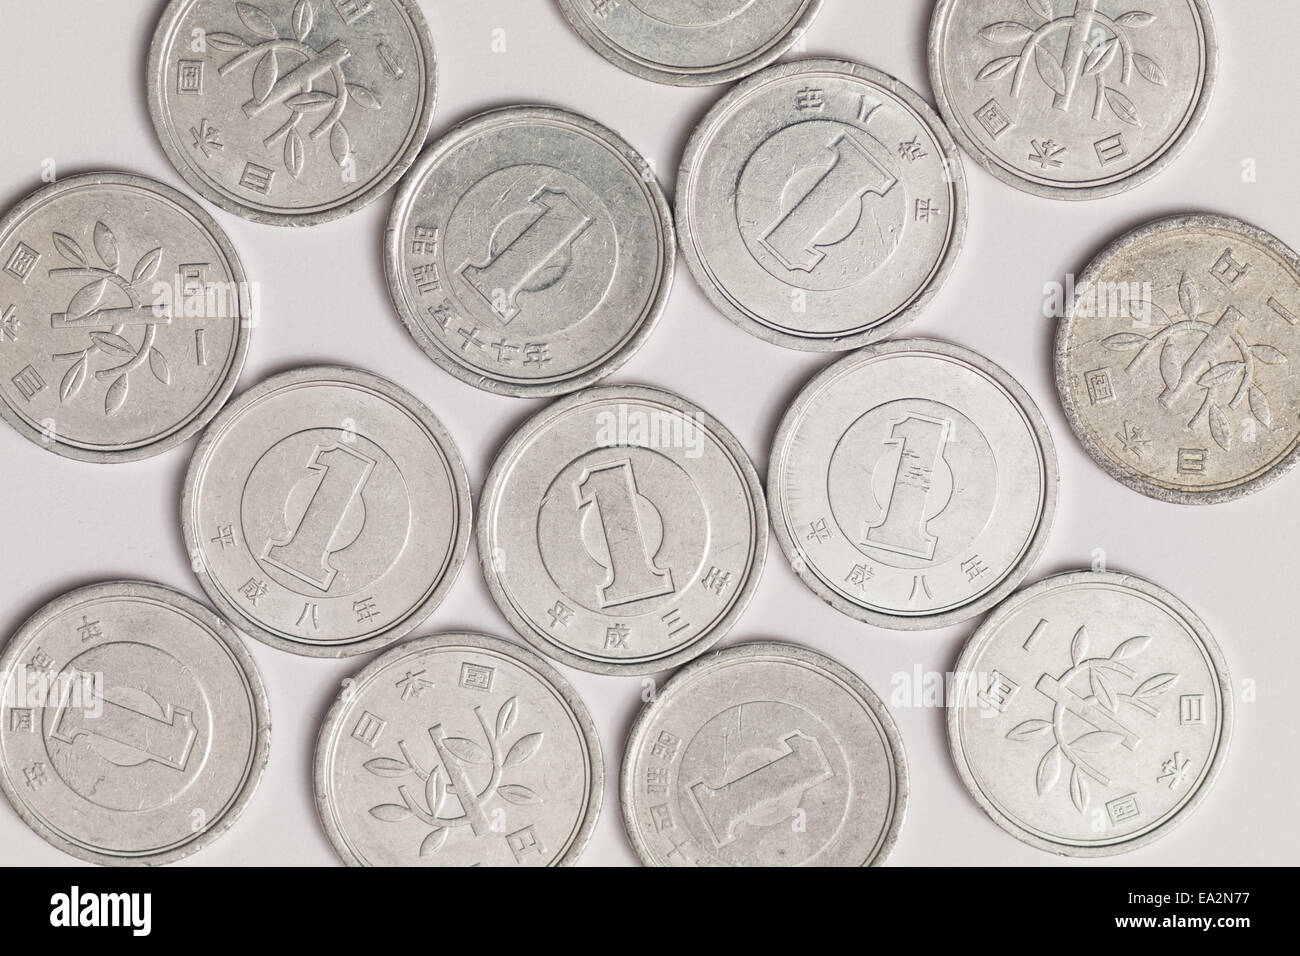 A close-up of Japanese one yen coins (1 yen coins), the smallest denomination of Japanese yen currency. - Stock Image